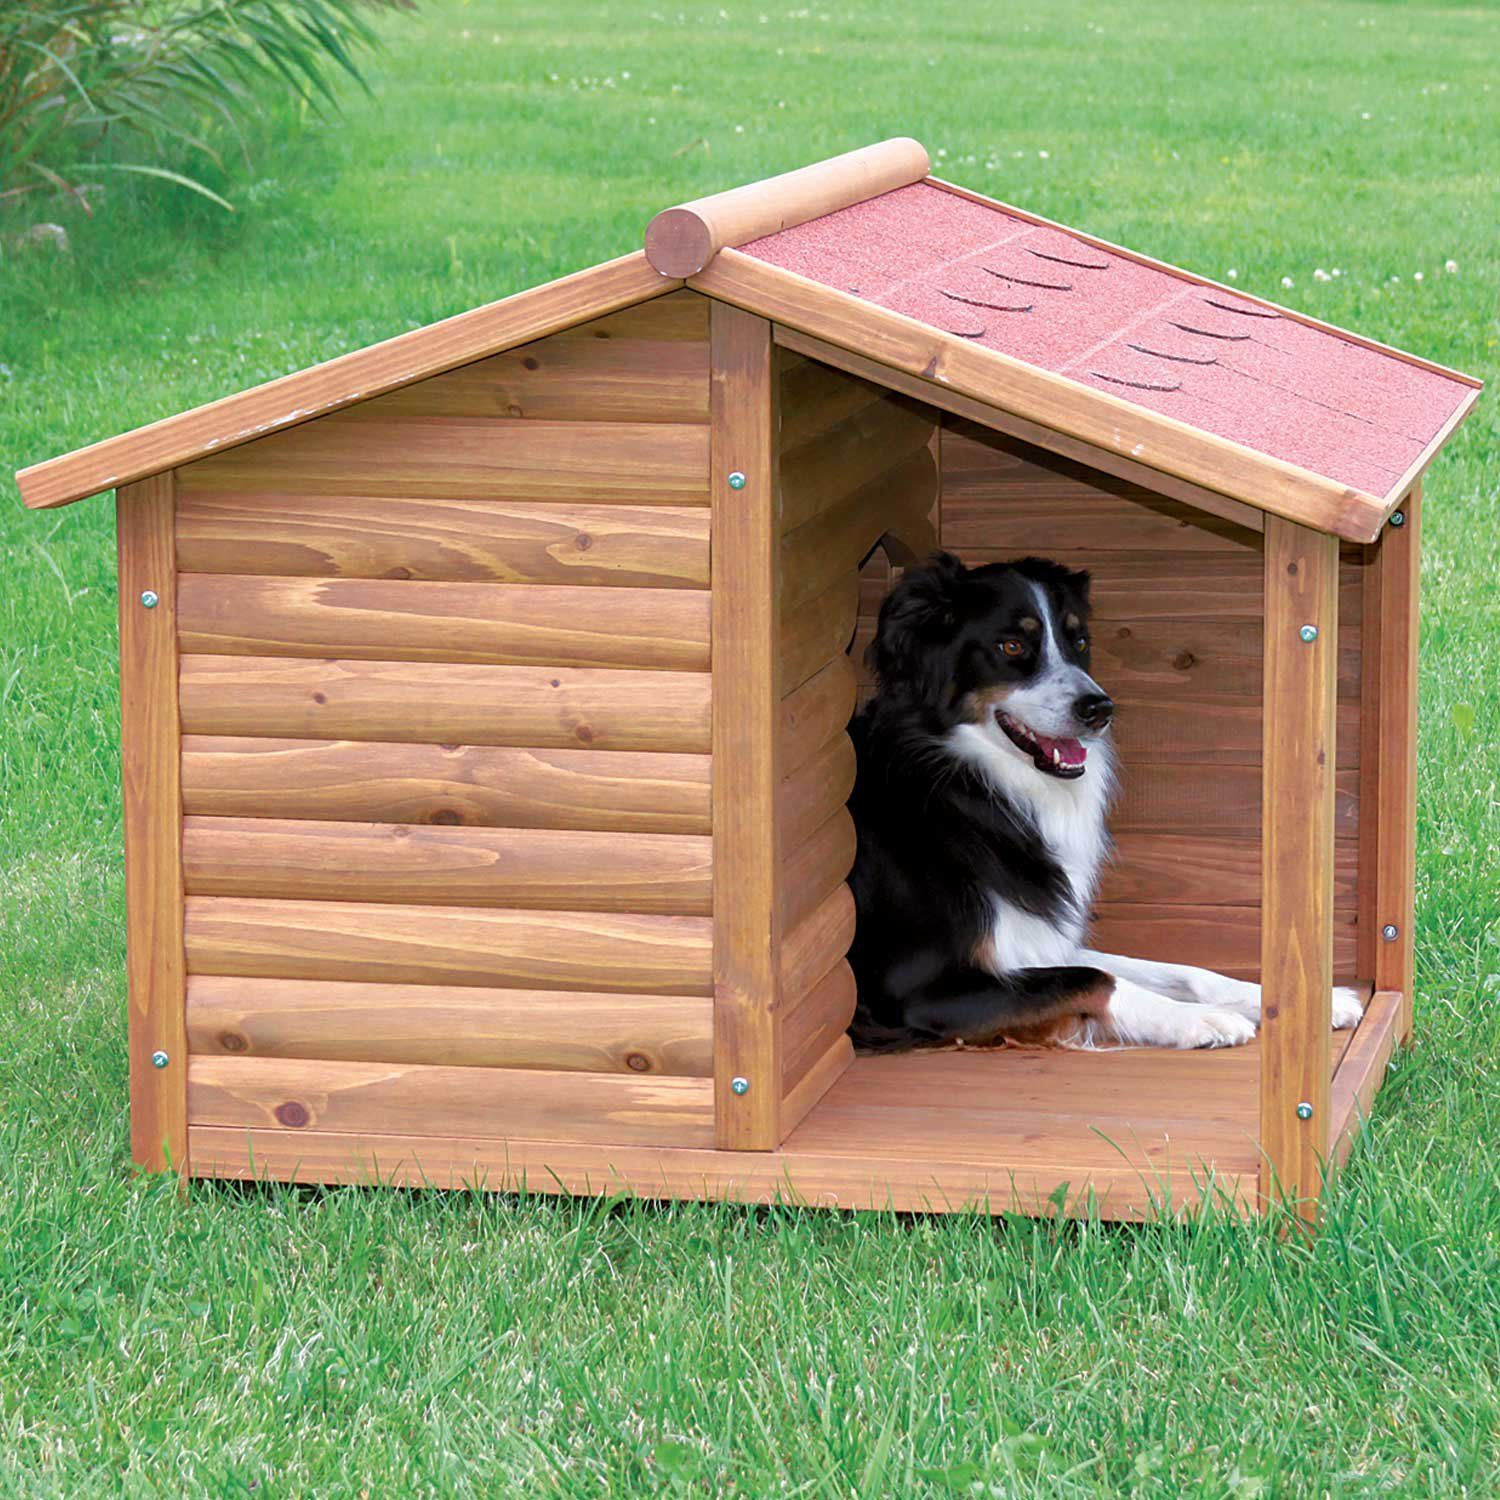 Trixie Natura Log Dog House 39 25 L X 33 25 W X 35 25 H